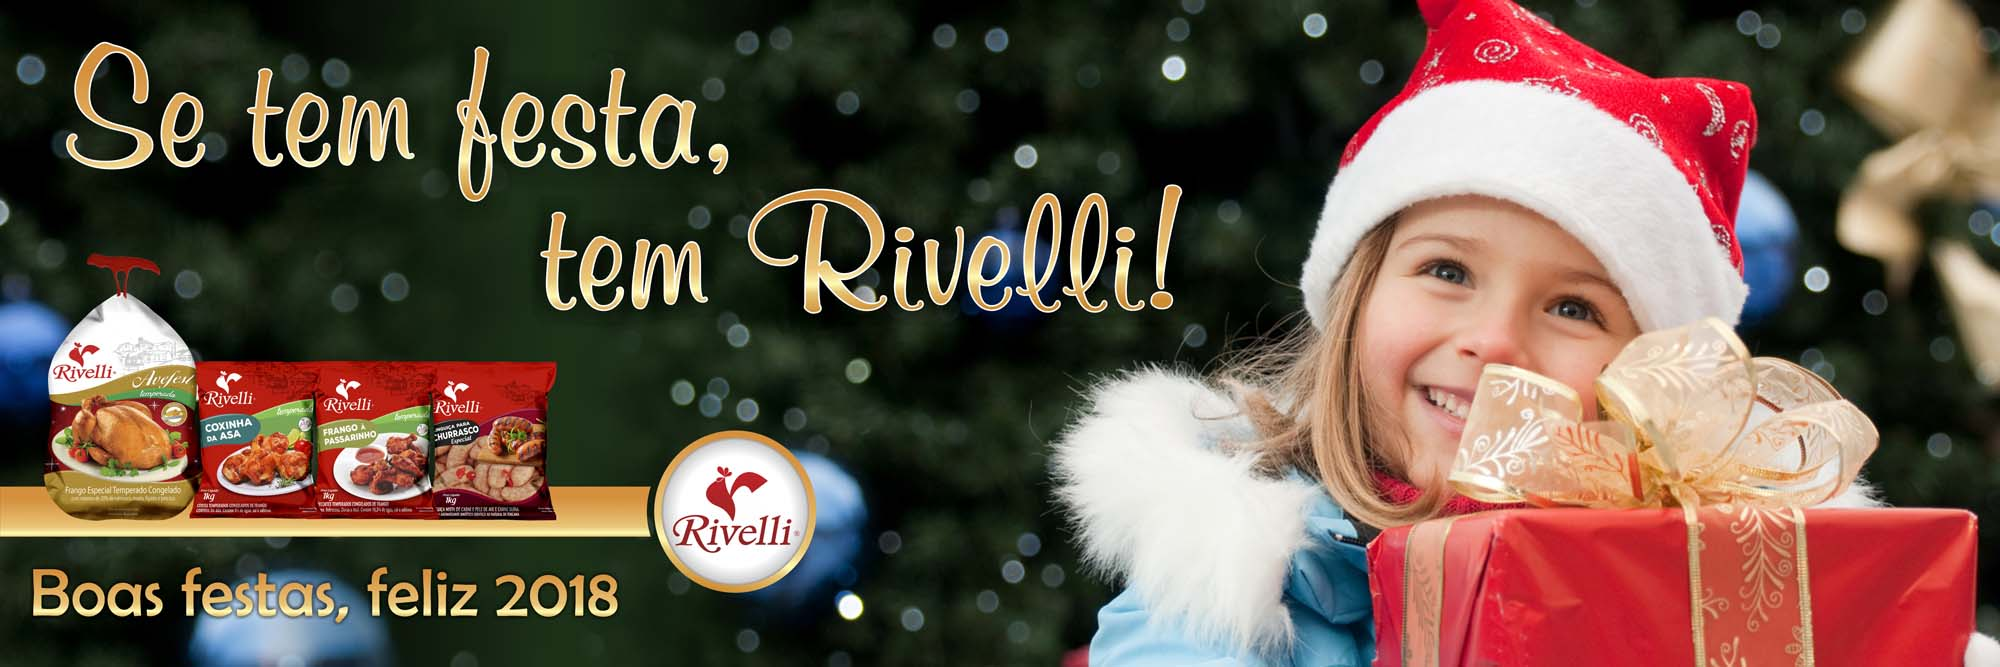 Outdoor De Natal Rivelli